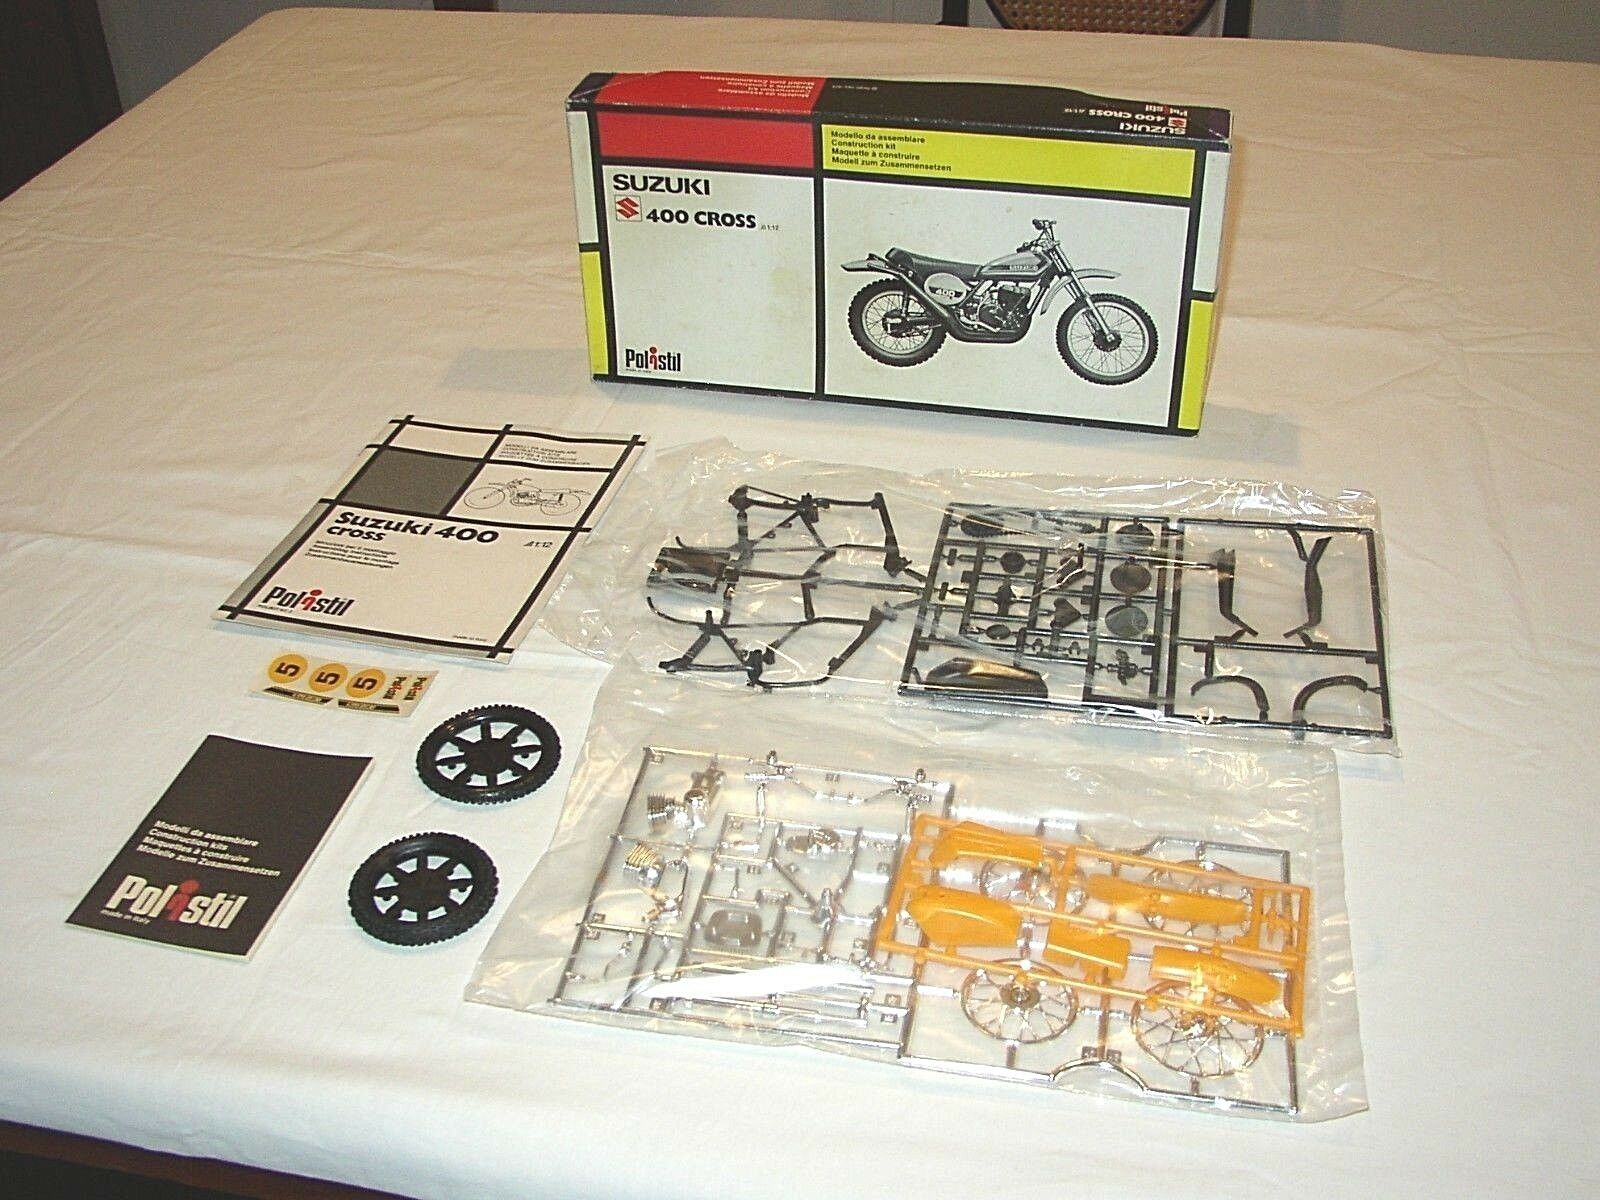 MOTO SUZUKI 400 CROSS - POLISTIL - 1974 - SCALA 1:12 KIT - MINT/BOX - MOLTO RARO